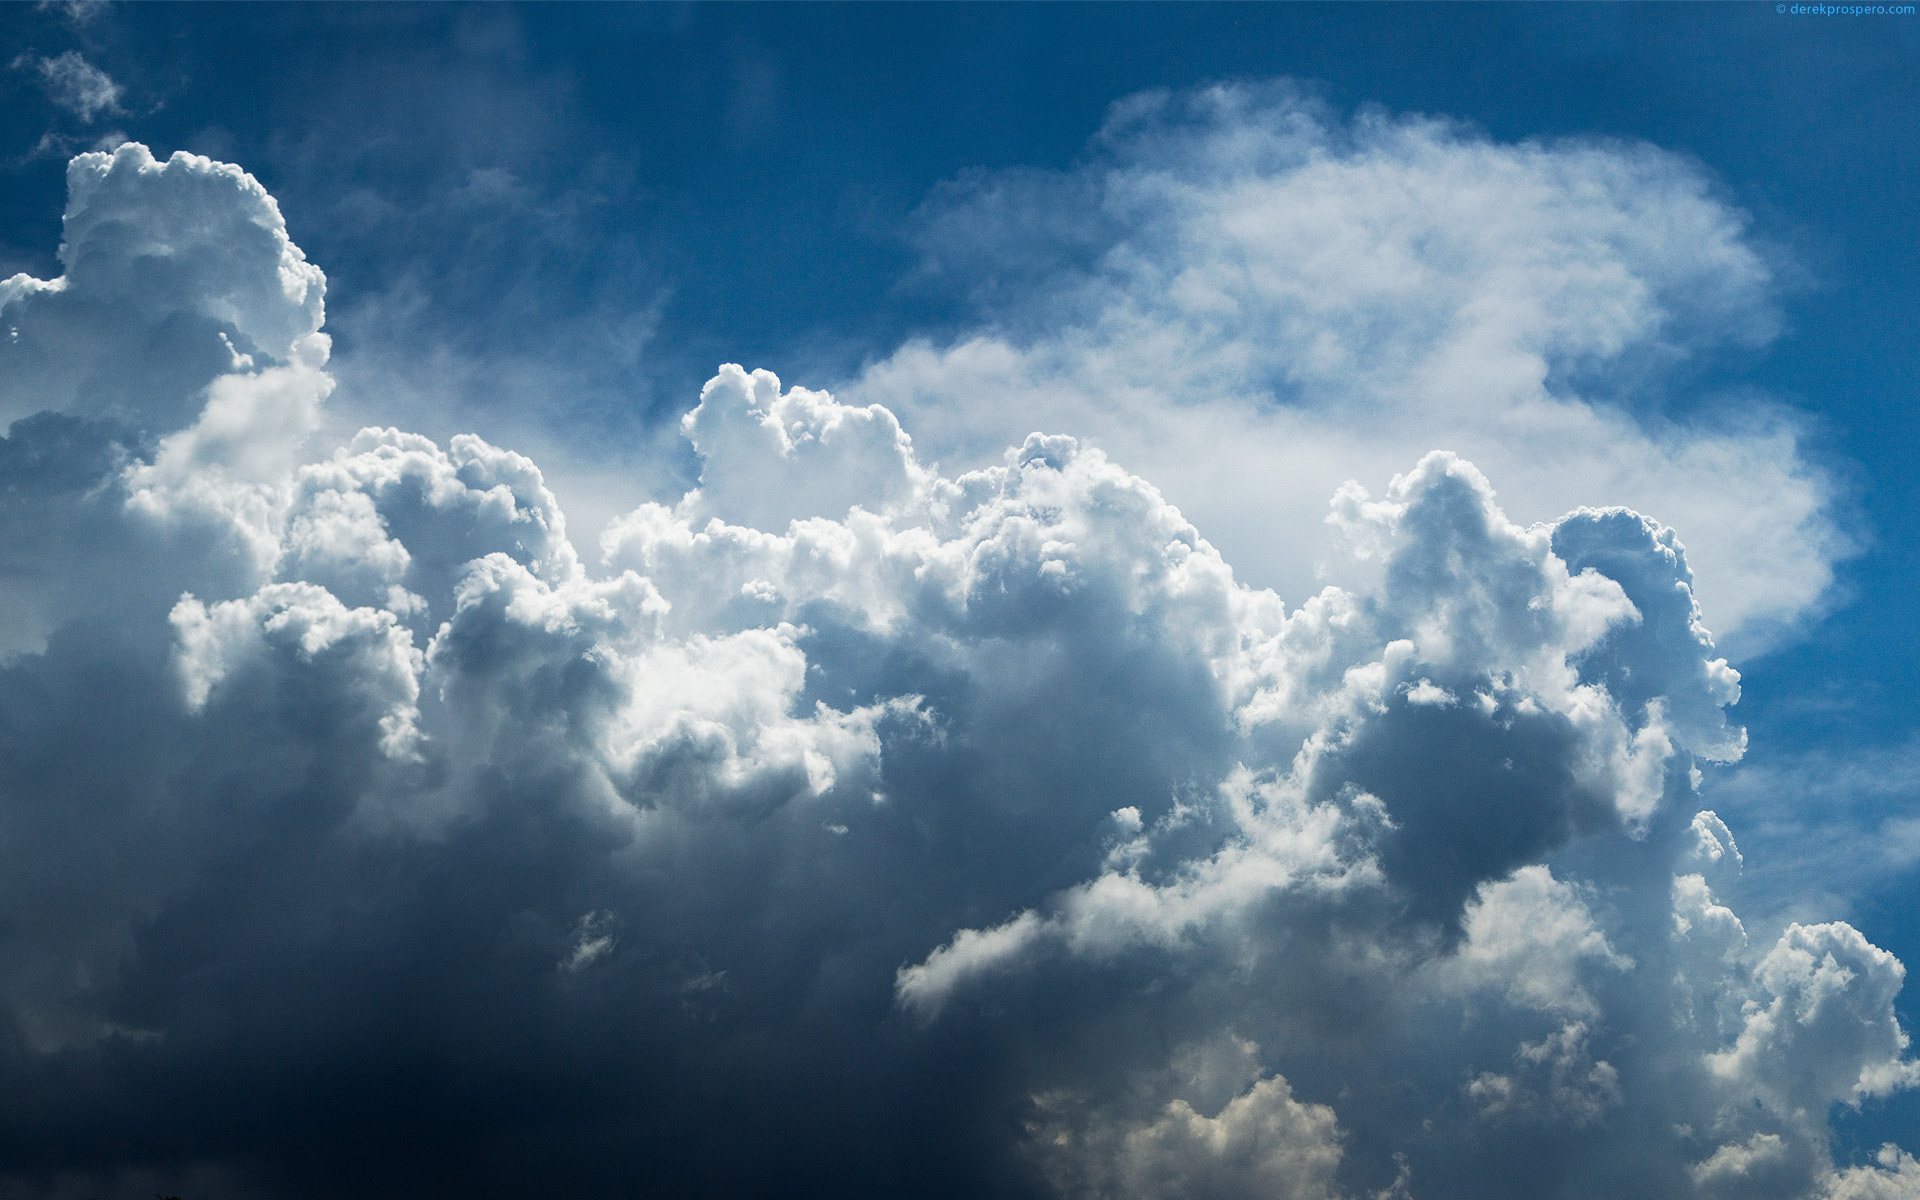 Cloud hd wallpaper background image 1920x1200 id 78777 wallpaper abyss - Hd clouds for photoshop ...